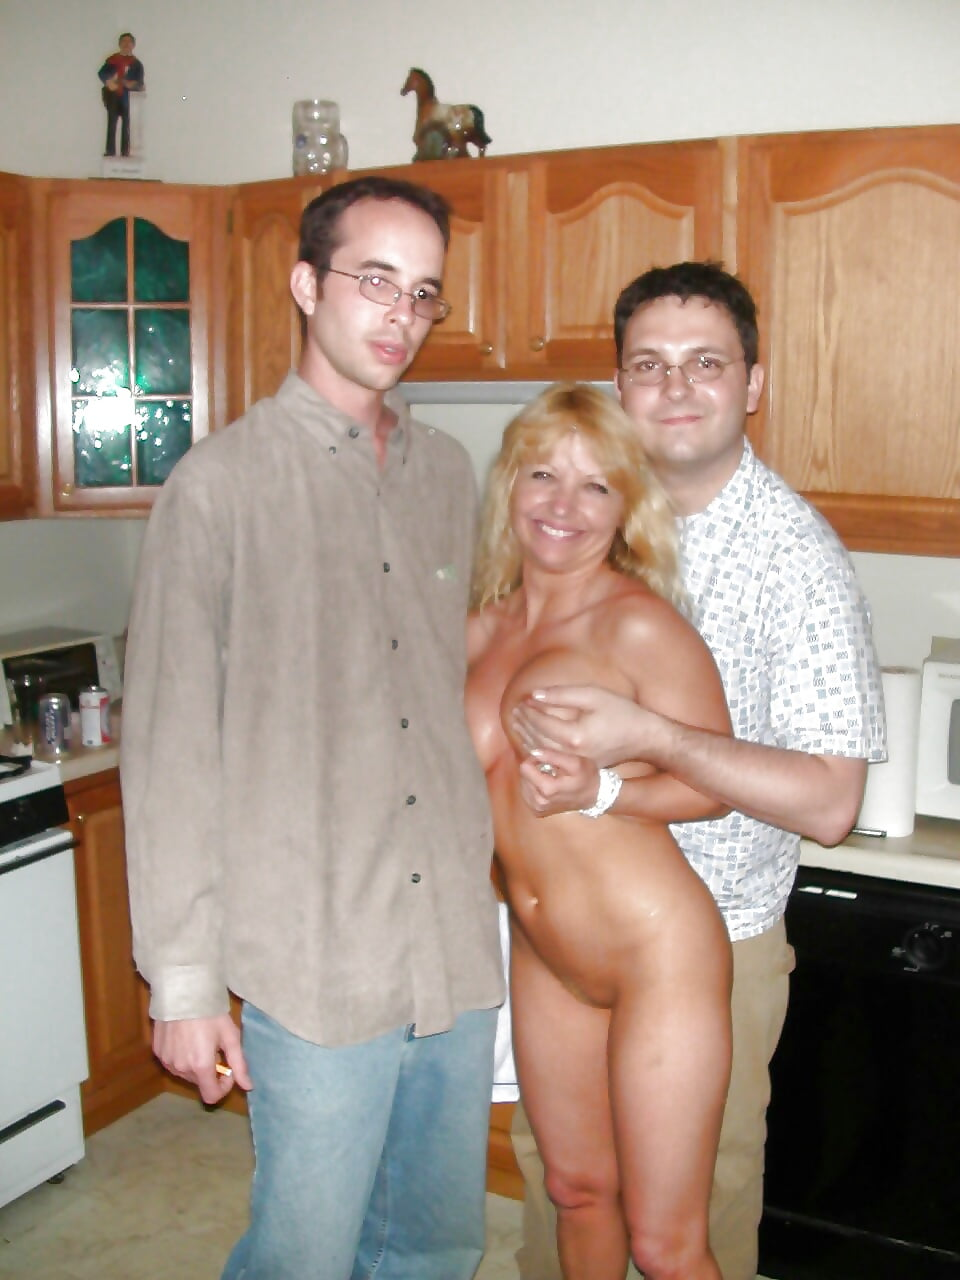 Exposed cheating wives, boyfriends girlfriends caught fucking